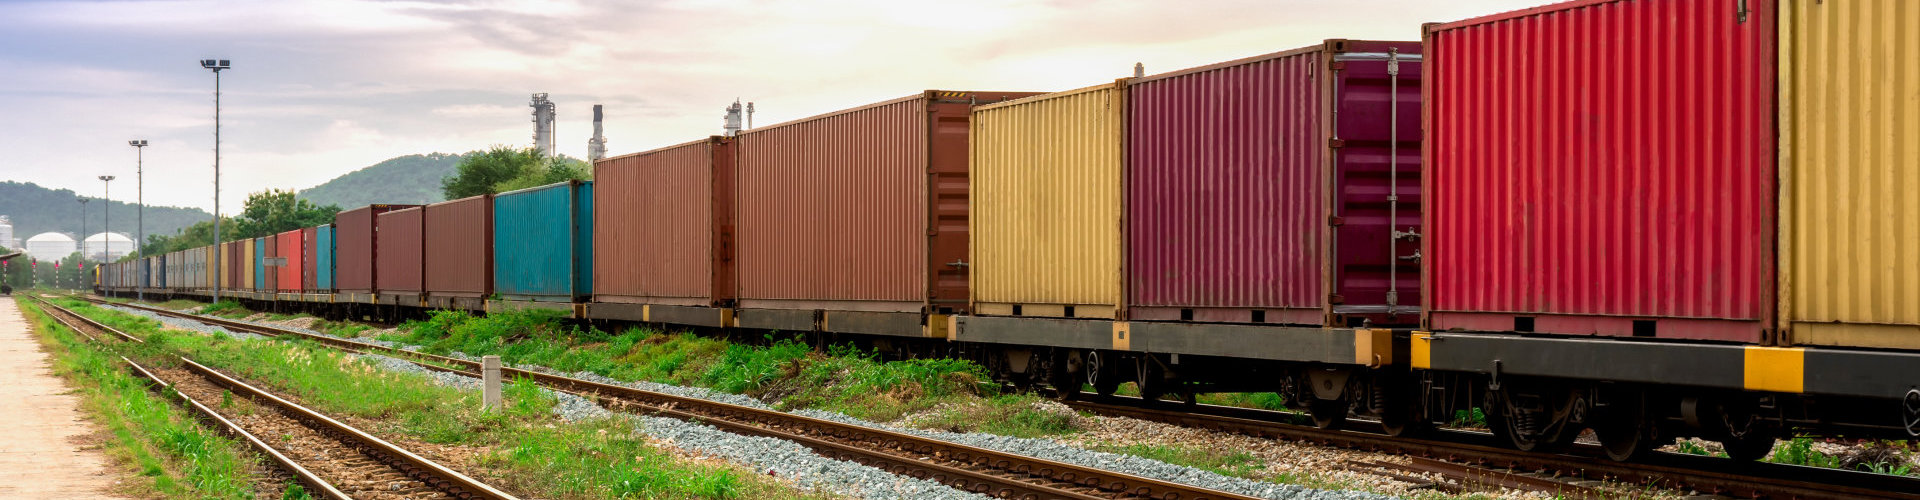 train carrying freight containers